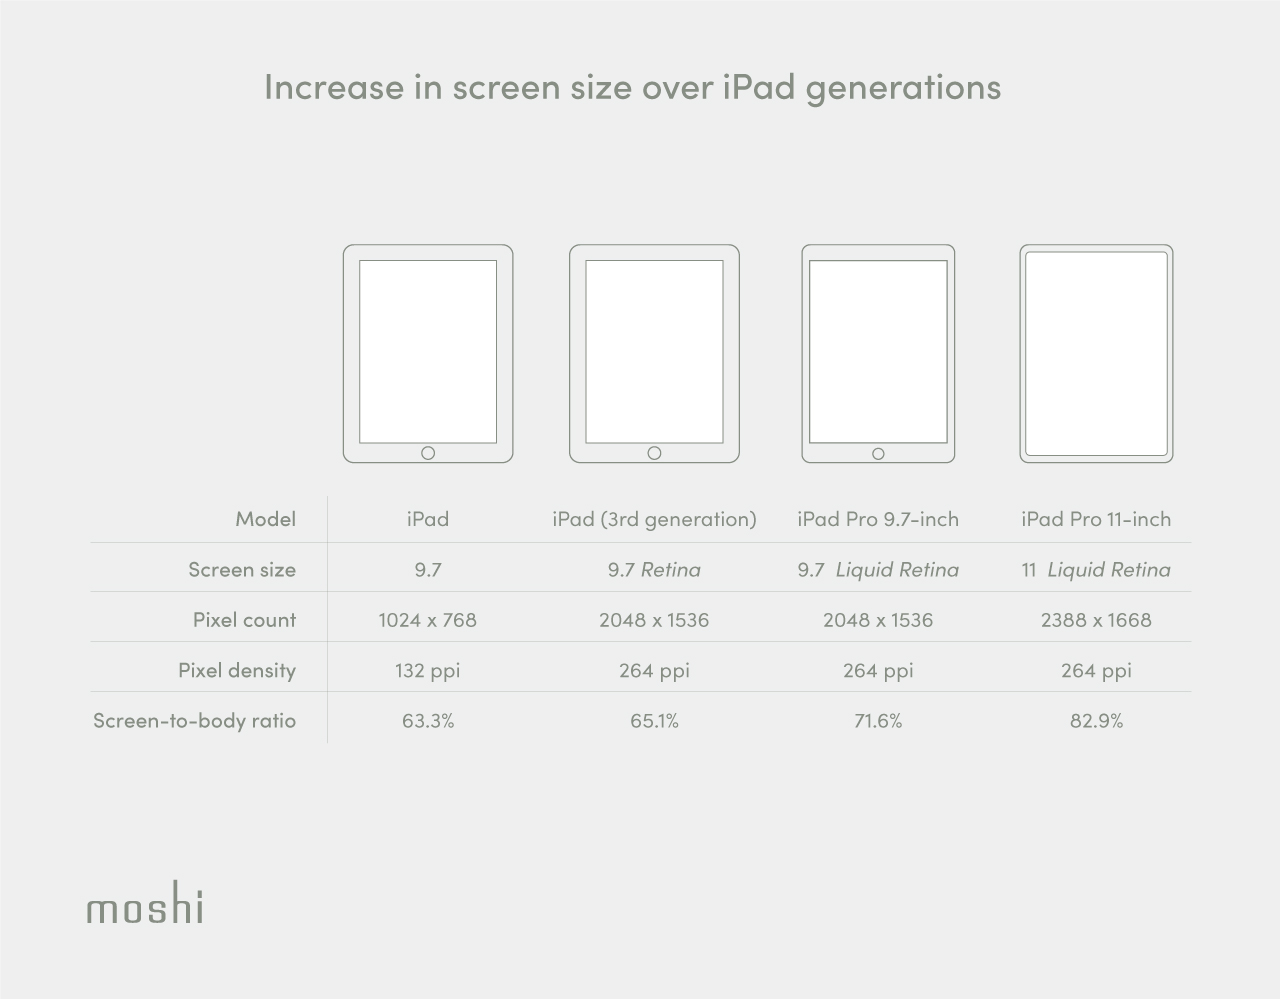 A specification table of iPad models